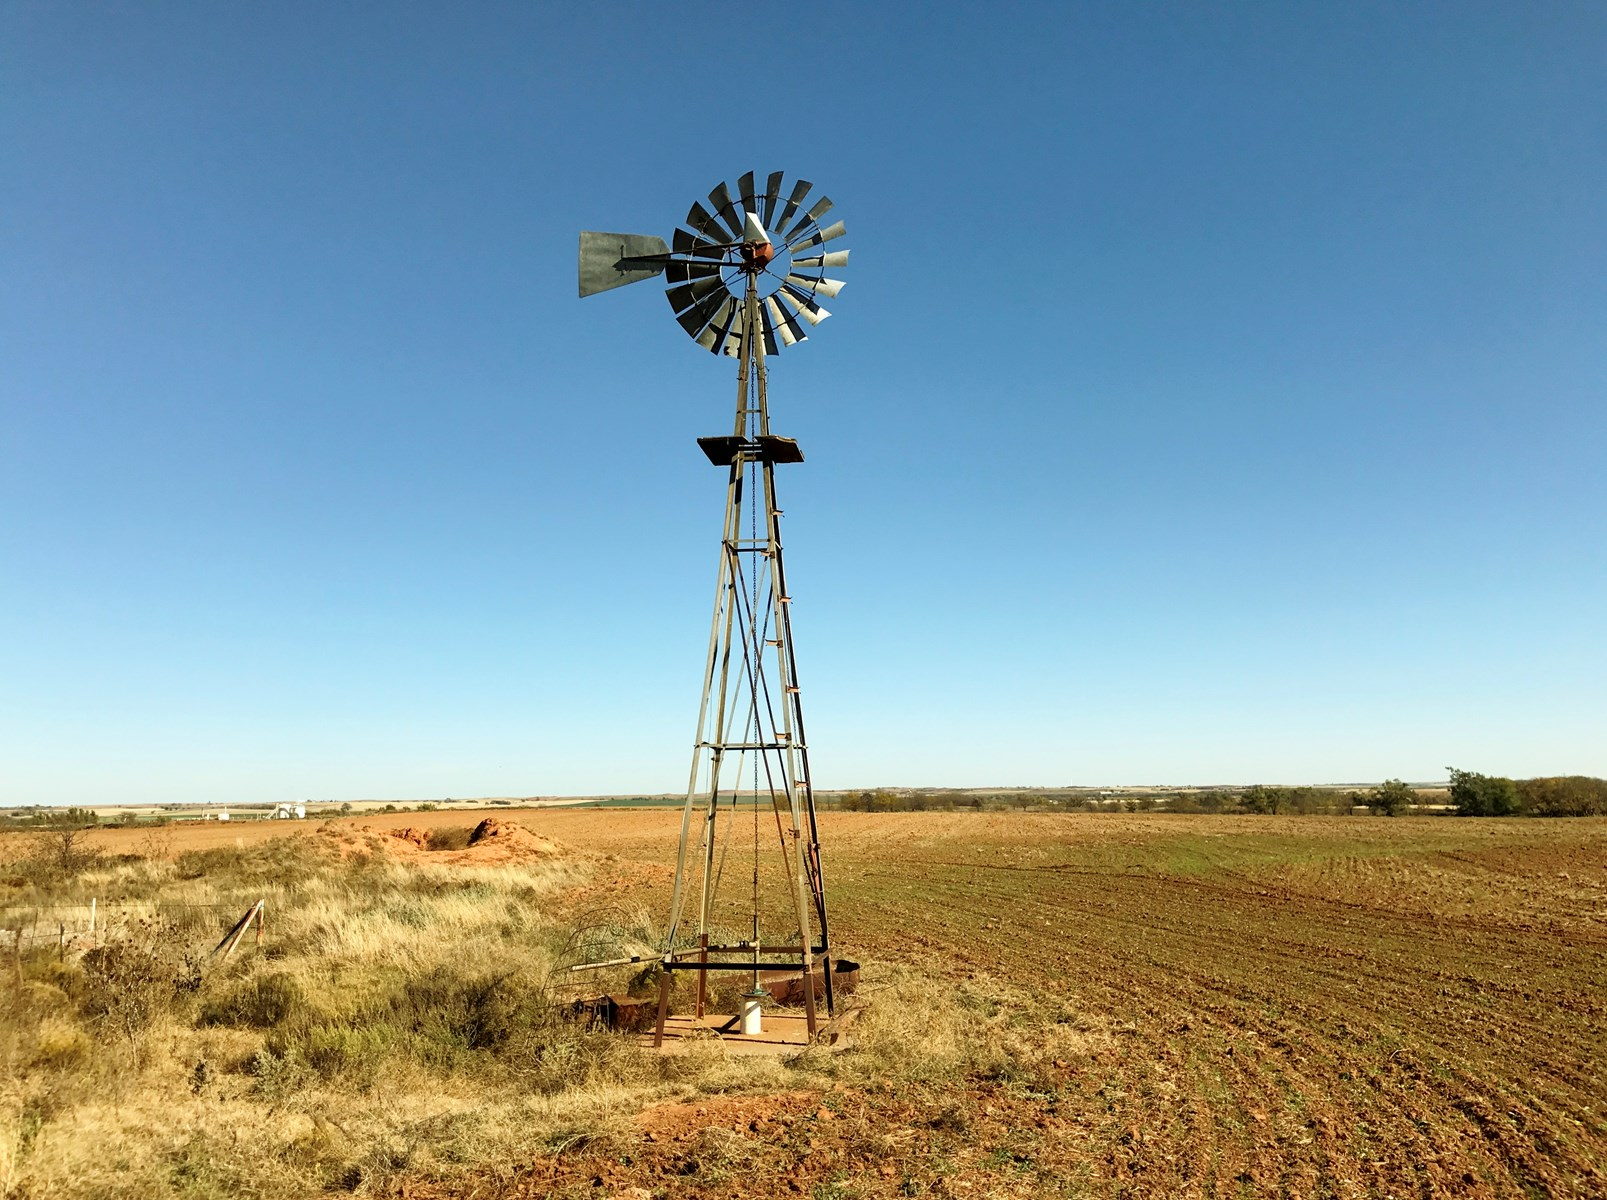 Land for Sale, Custer County, Oklahoma